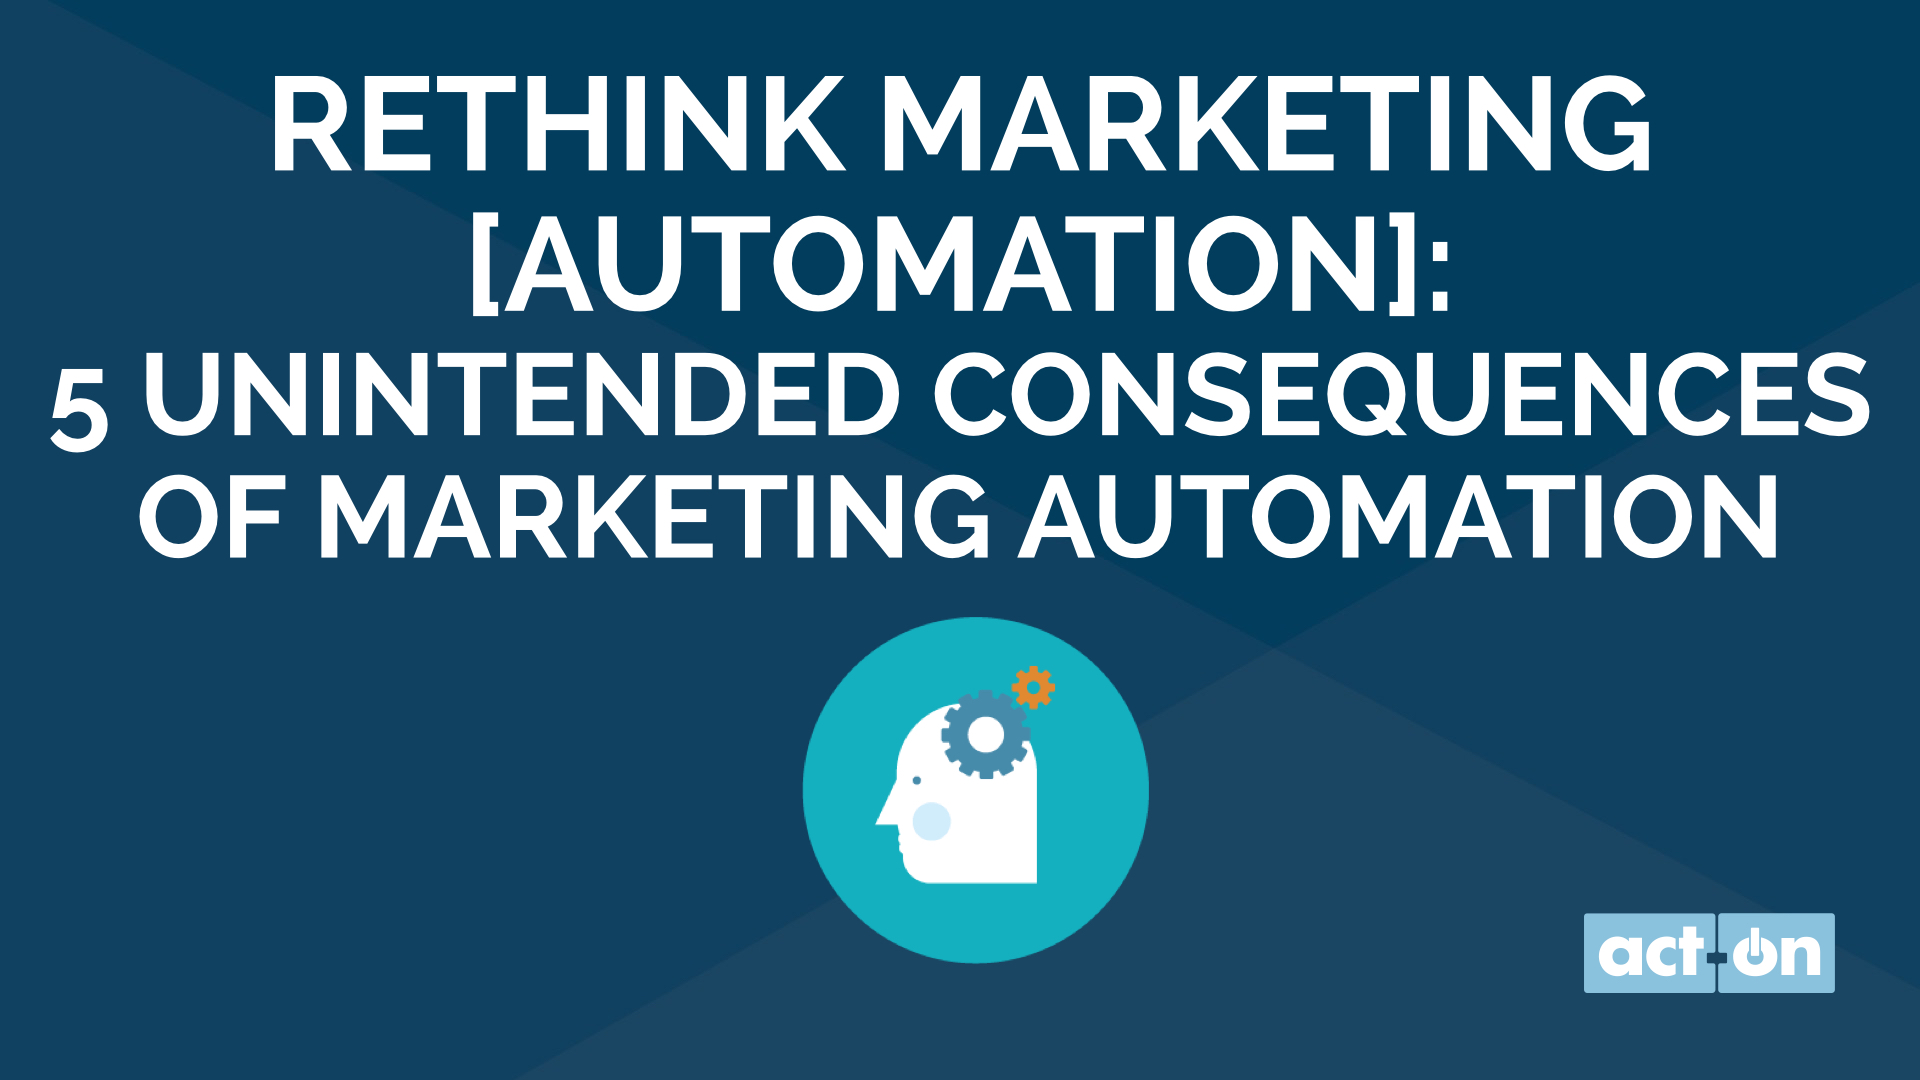 Rethink Marketing Automation: 5 Unintended Consequences